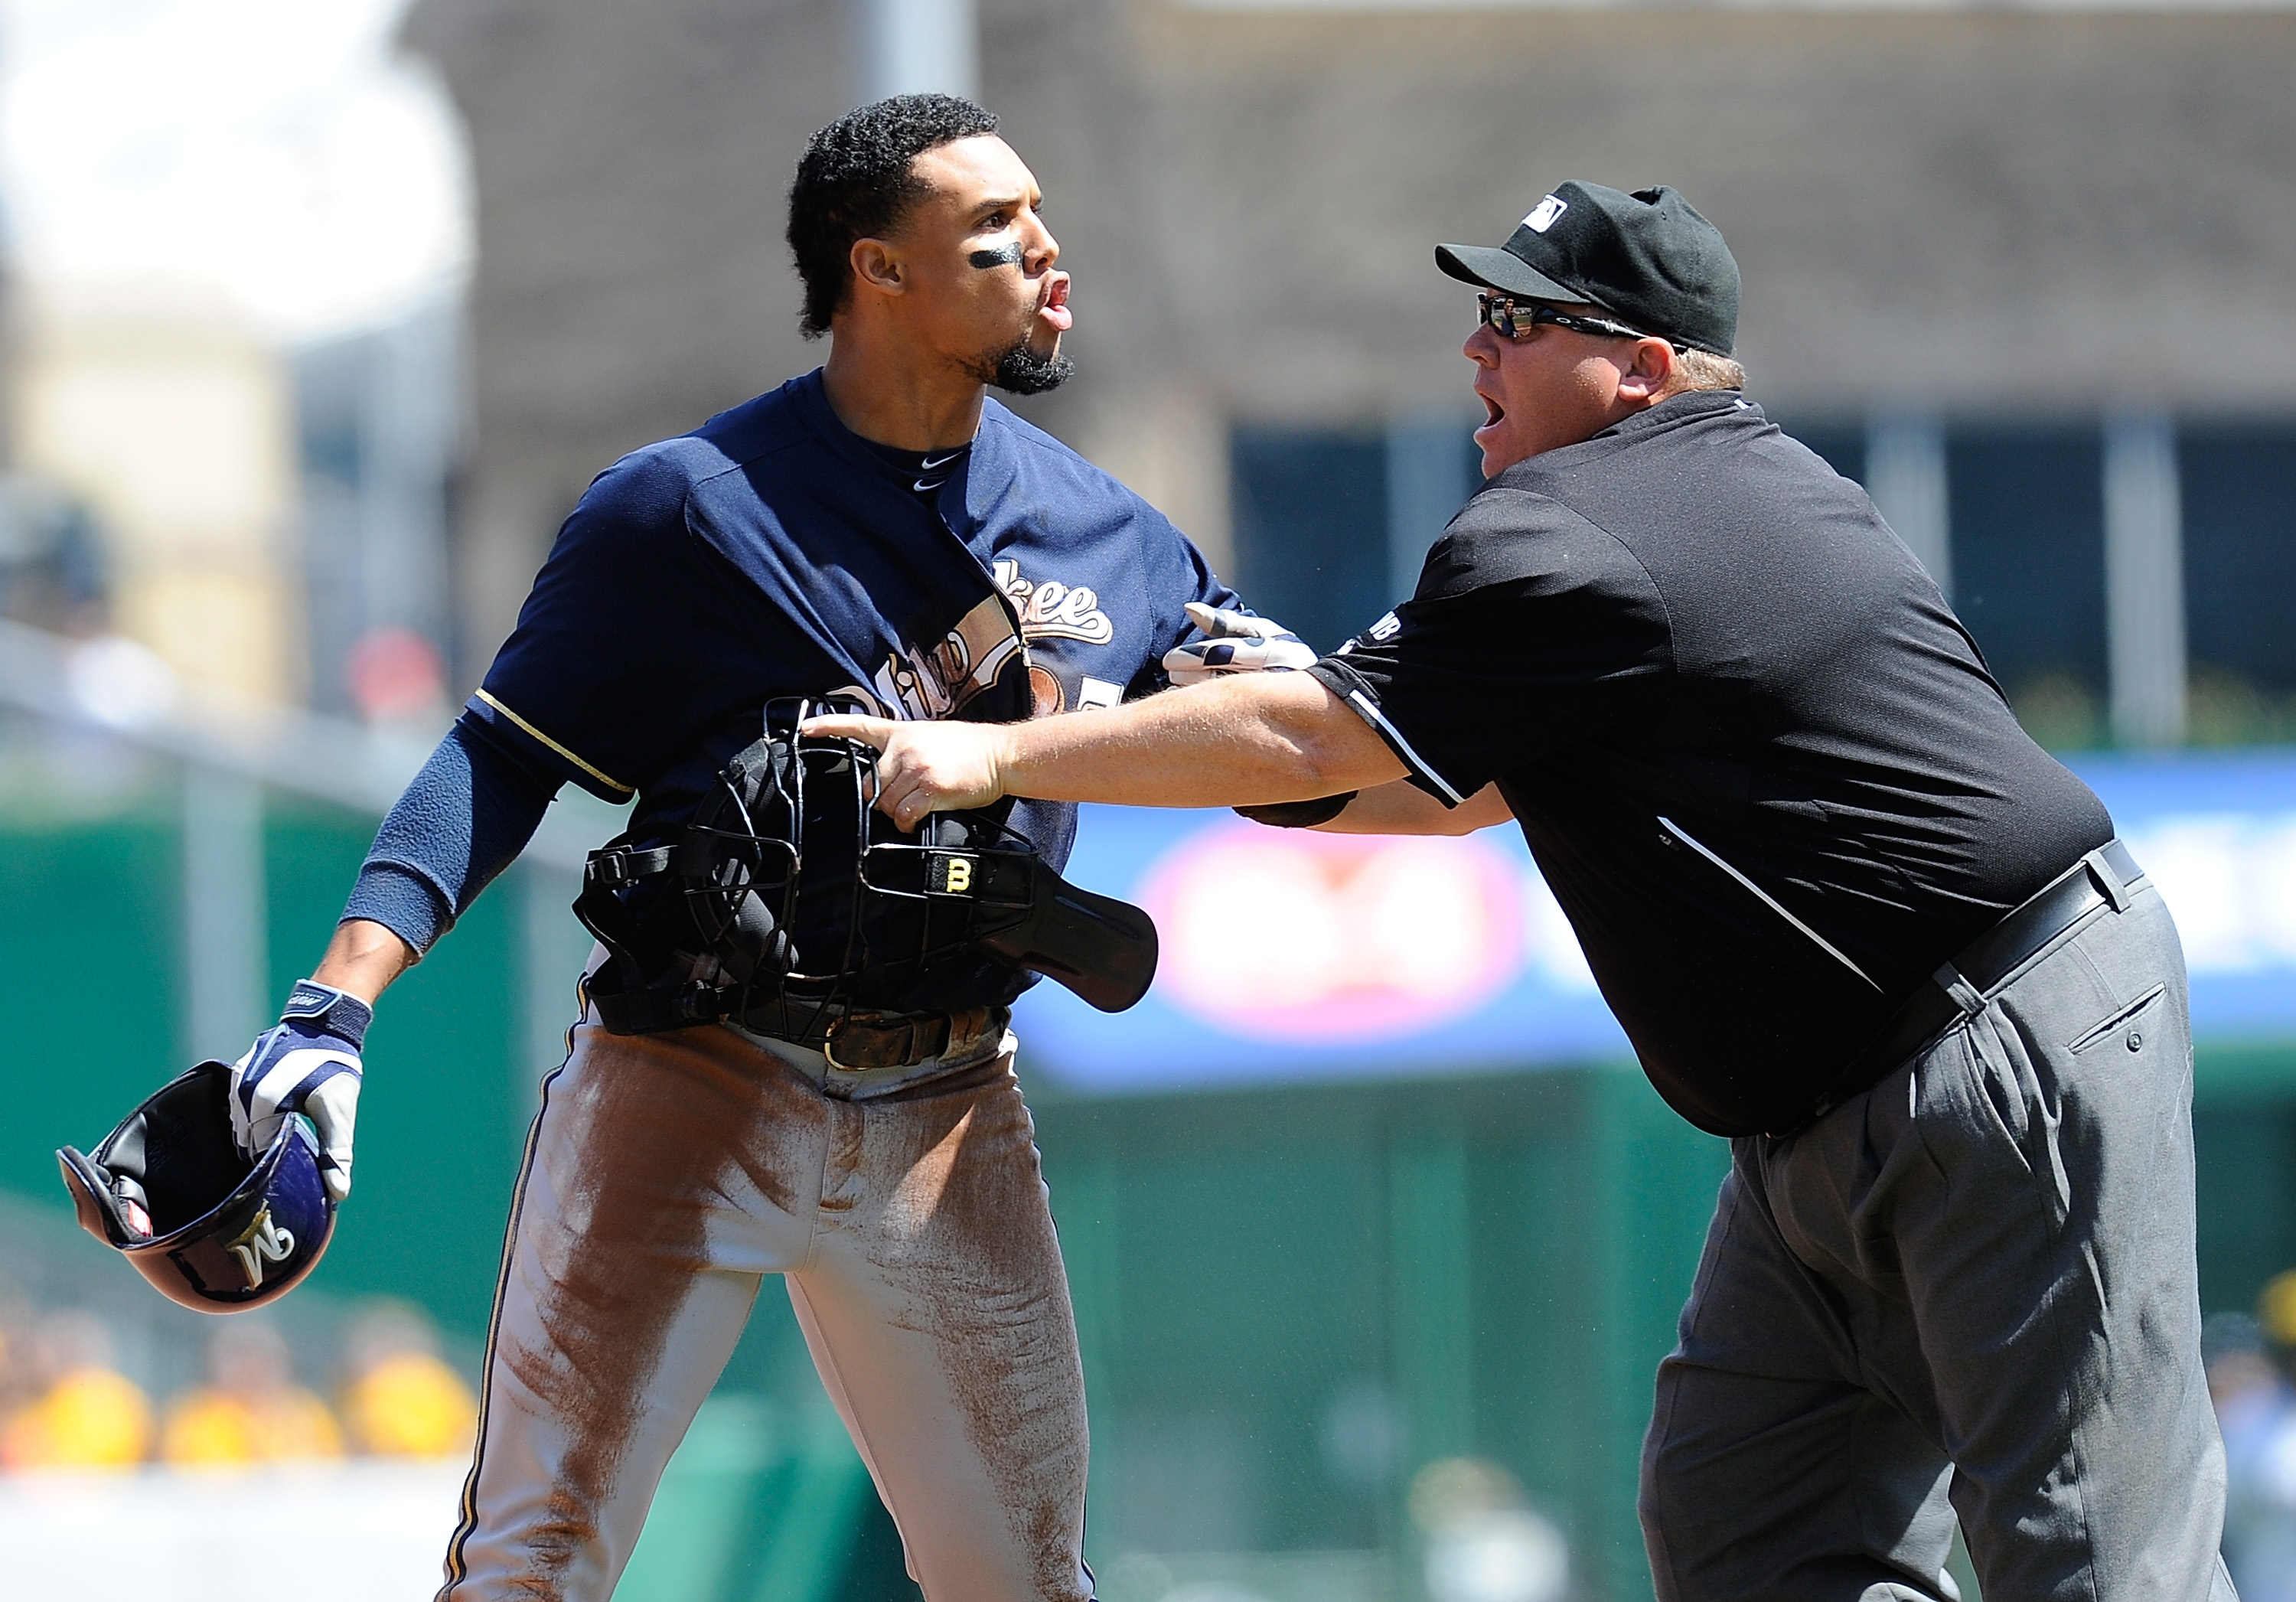 Carlos Gomez ignites benches-clearing brawl with Pirates after …